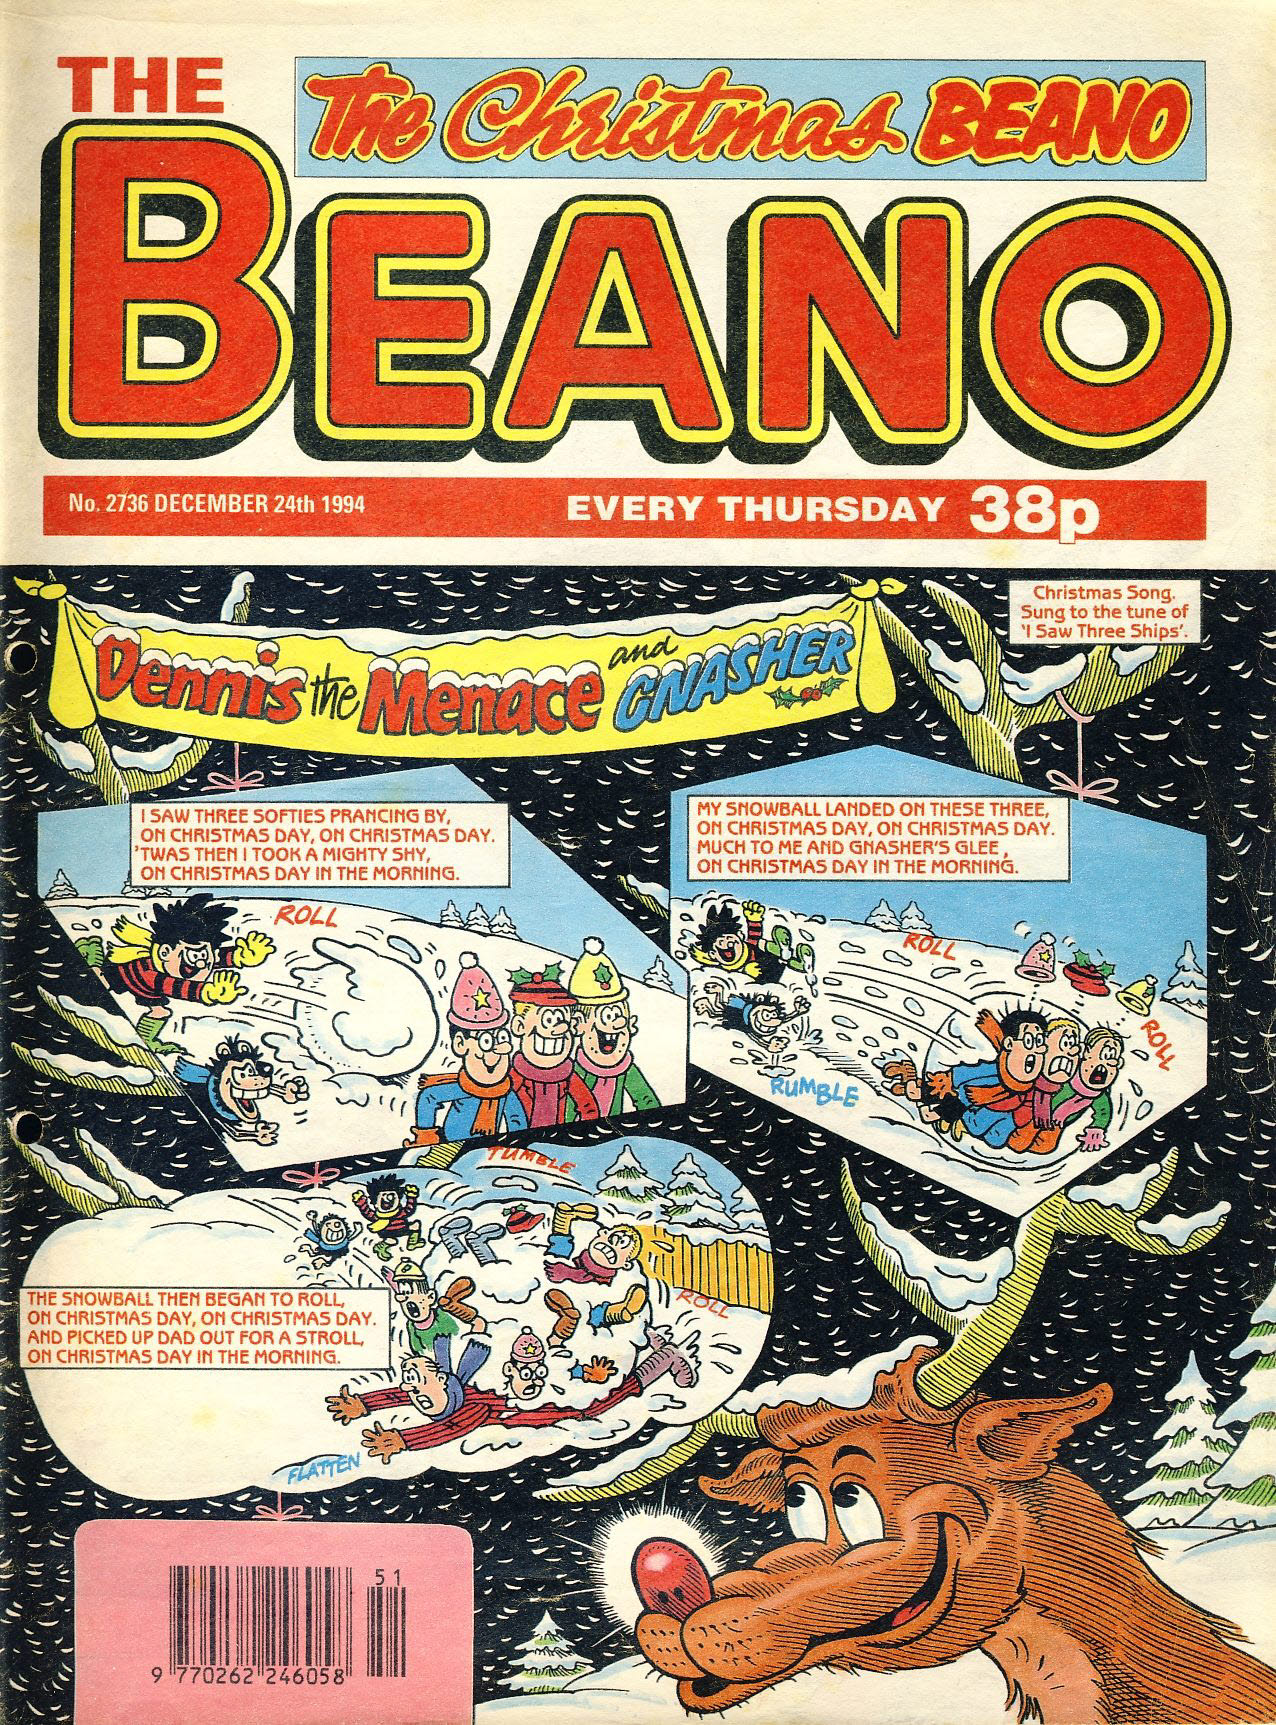 1994 December 24th CHRISTMAS BEANO vintage comic Good Gift Christmas Present Birthday Anniversary ref20 A vintage comic in good read condition. Please see larger photo and full description for details.